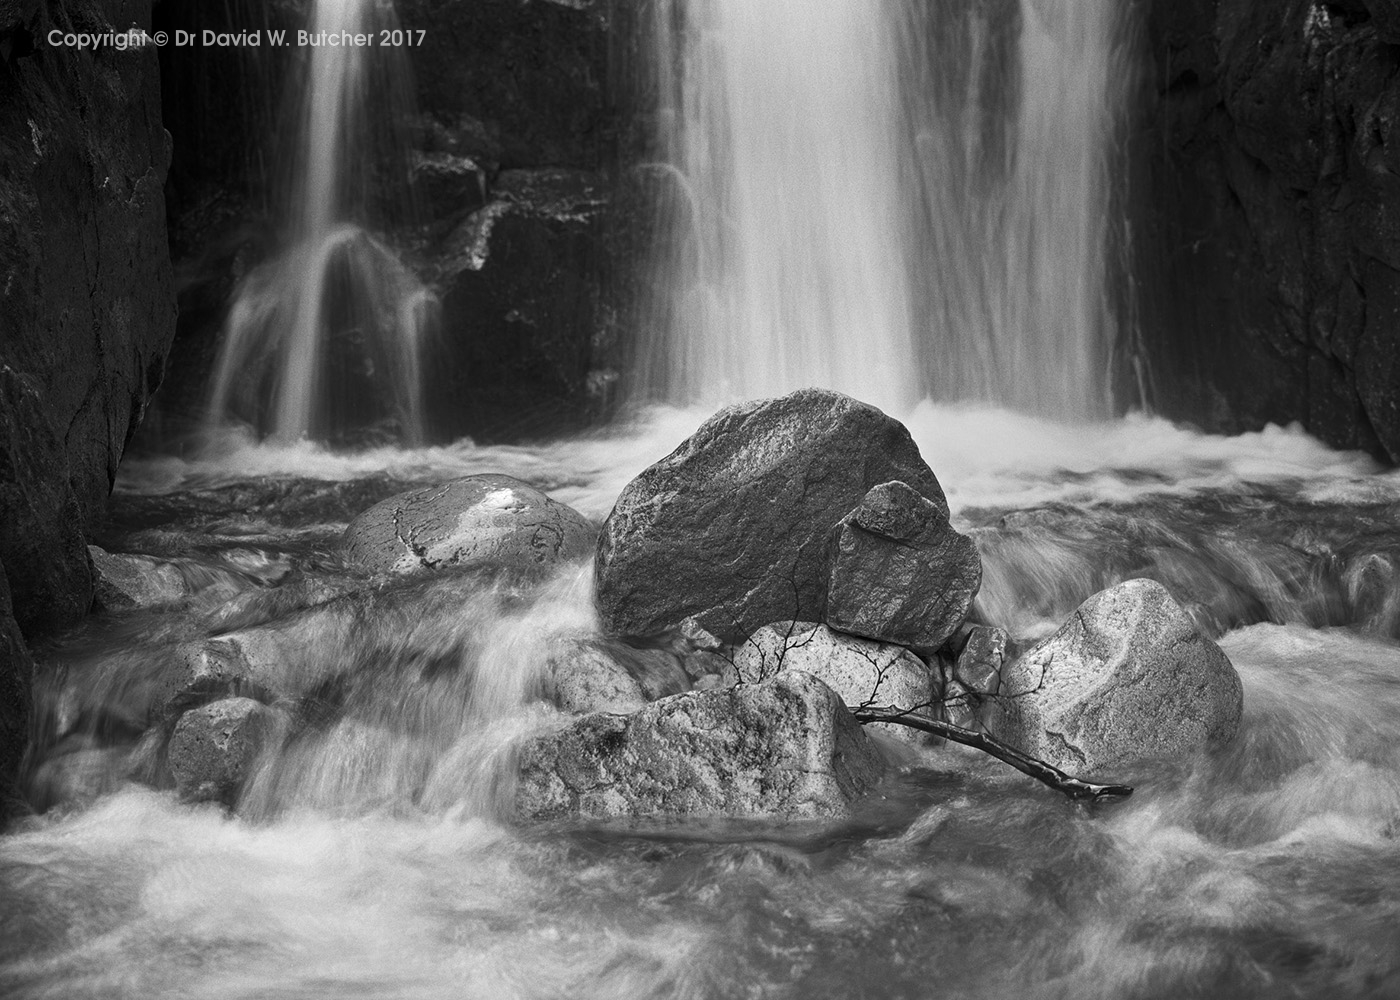 Scales Force #3, near Buttermere, Lake District